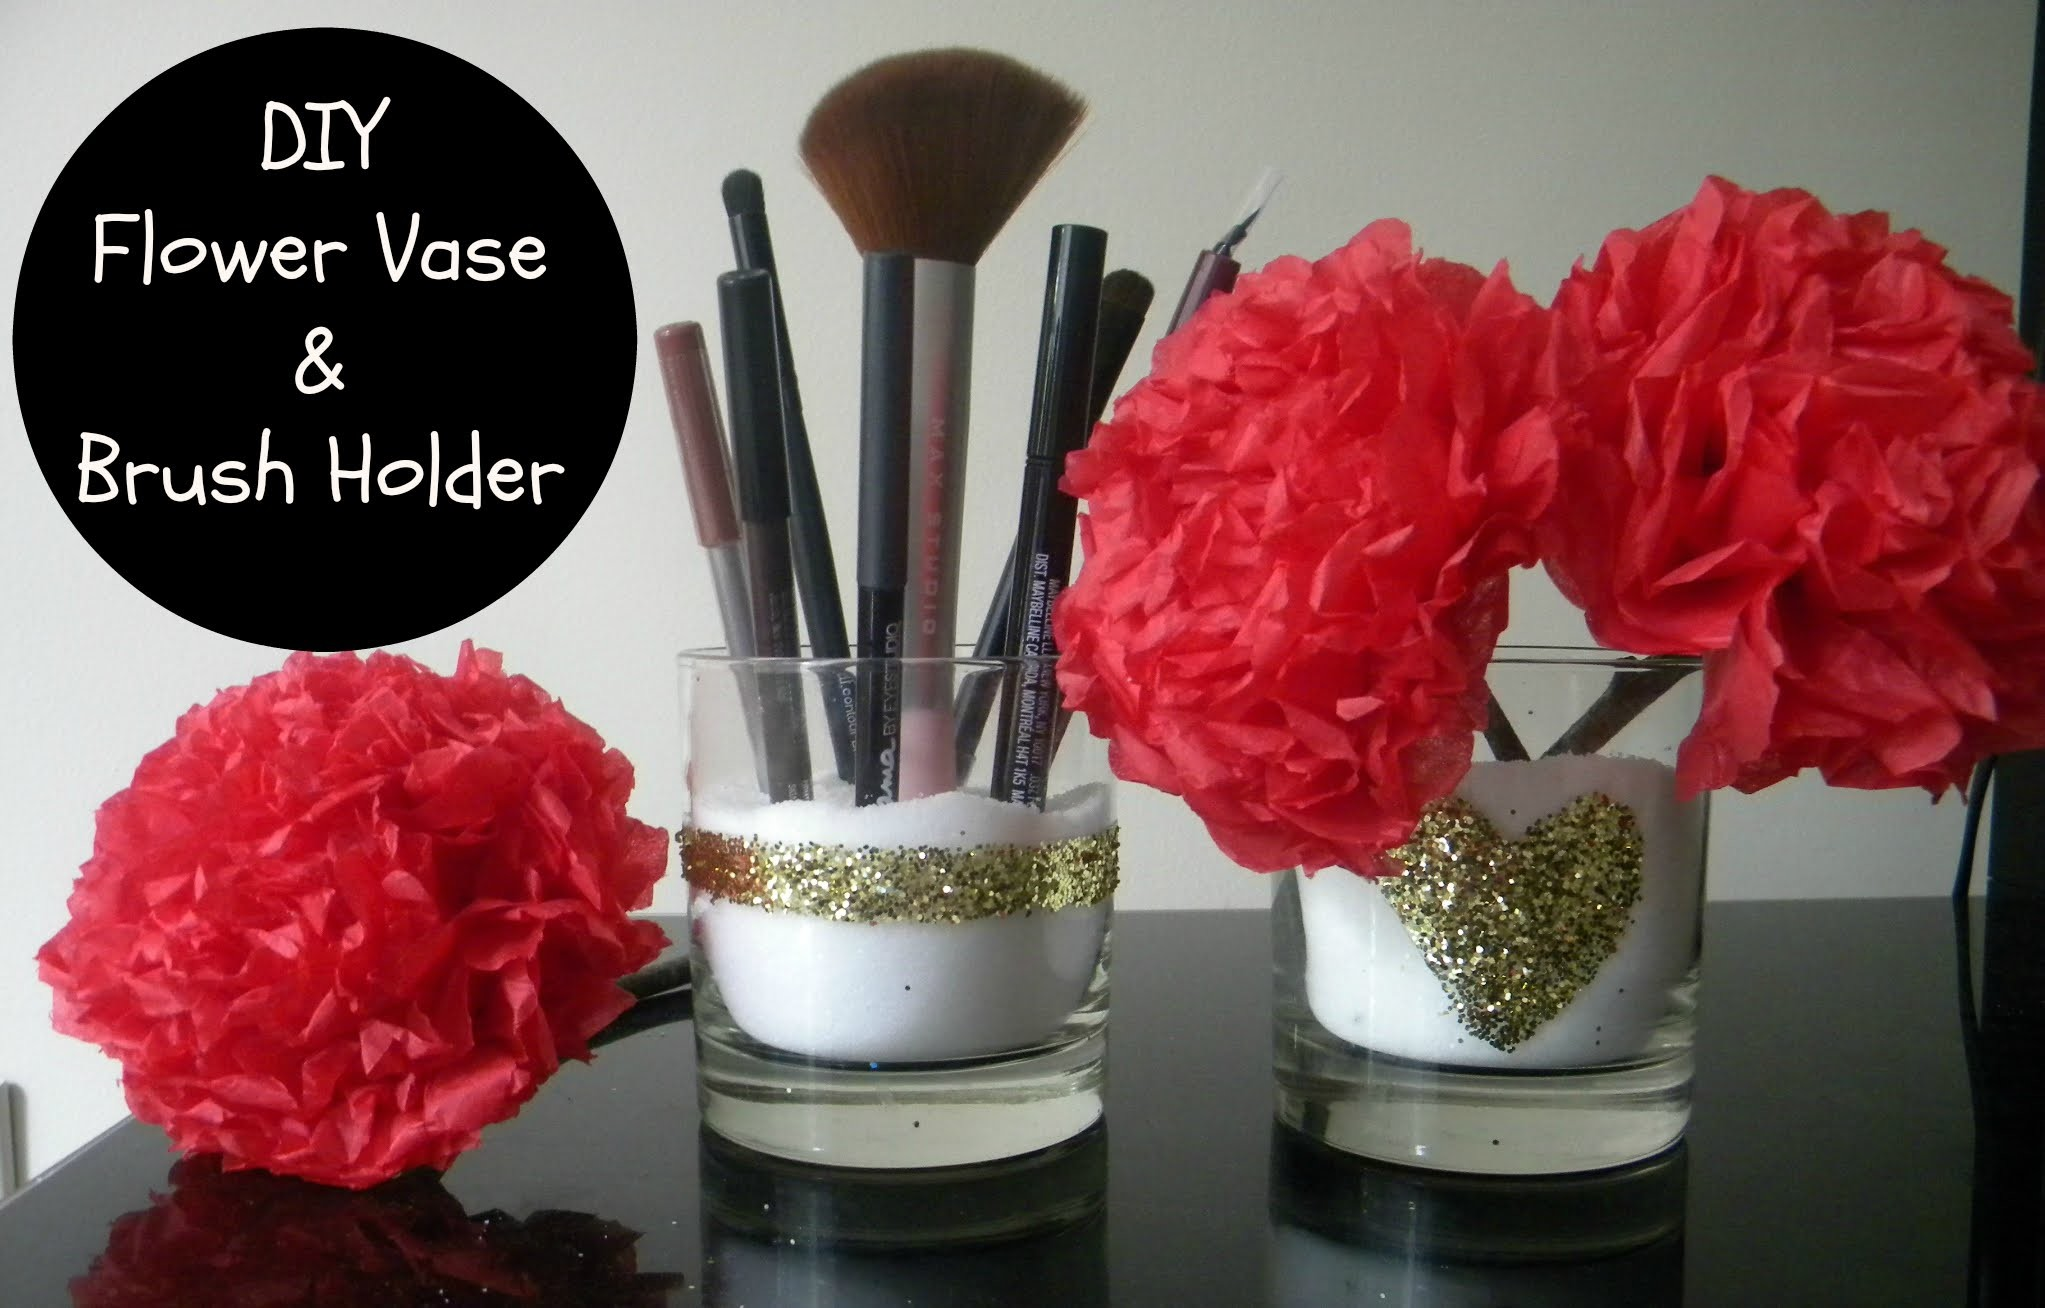 Diy Makeup Brush Holder & Flower Vase